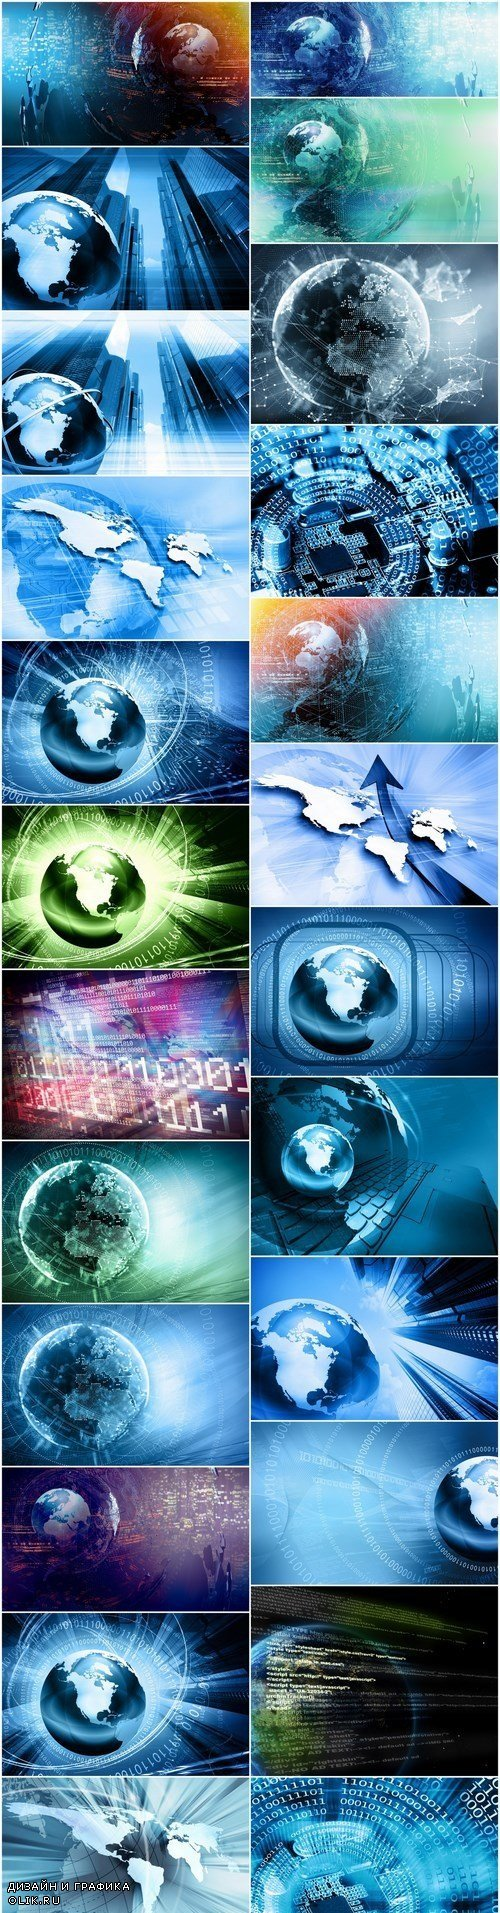 Digital world - Set of 24xUHQ JPEG Professional Stock Images